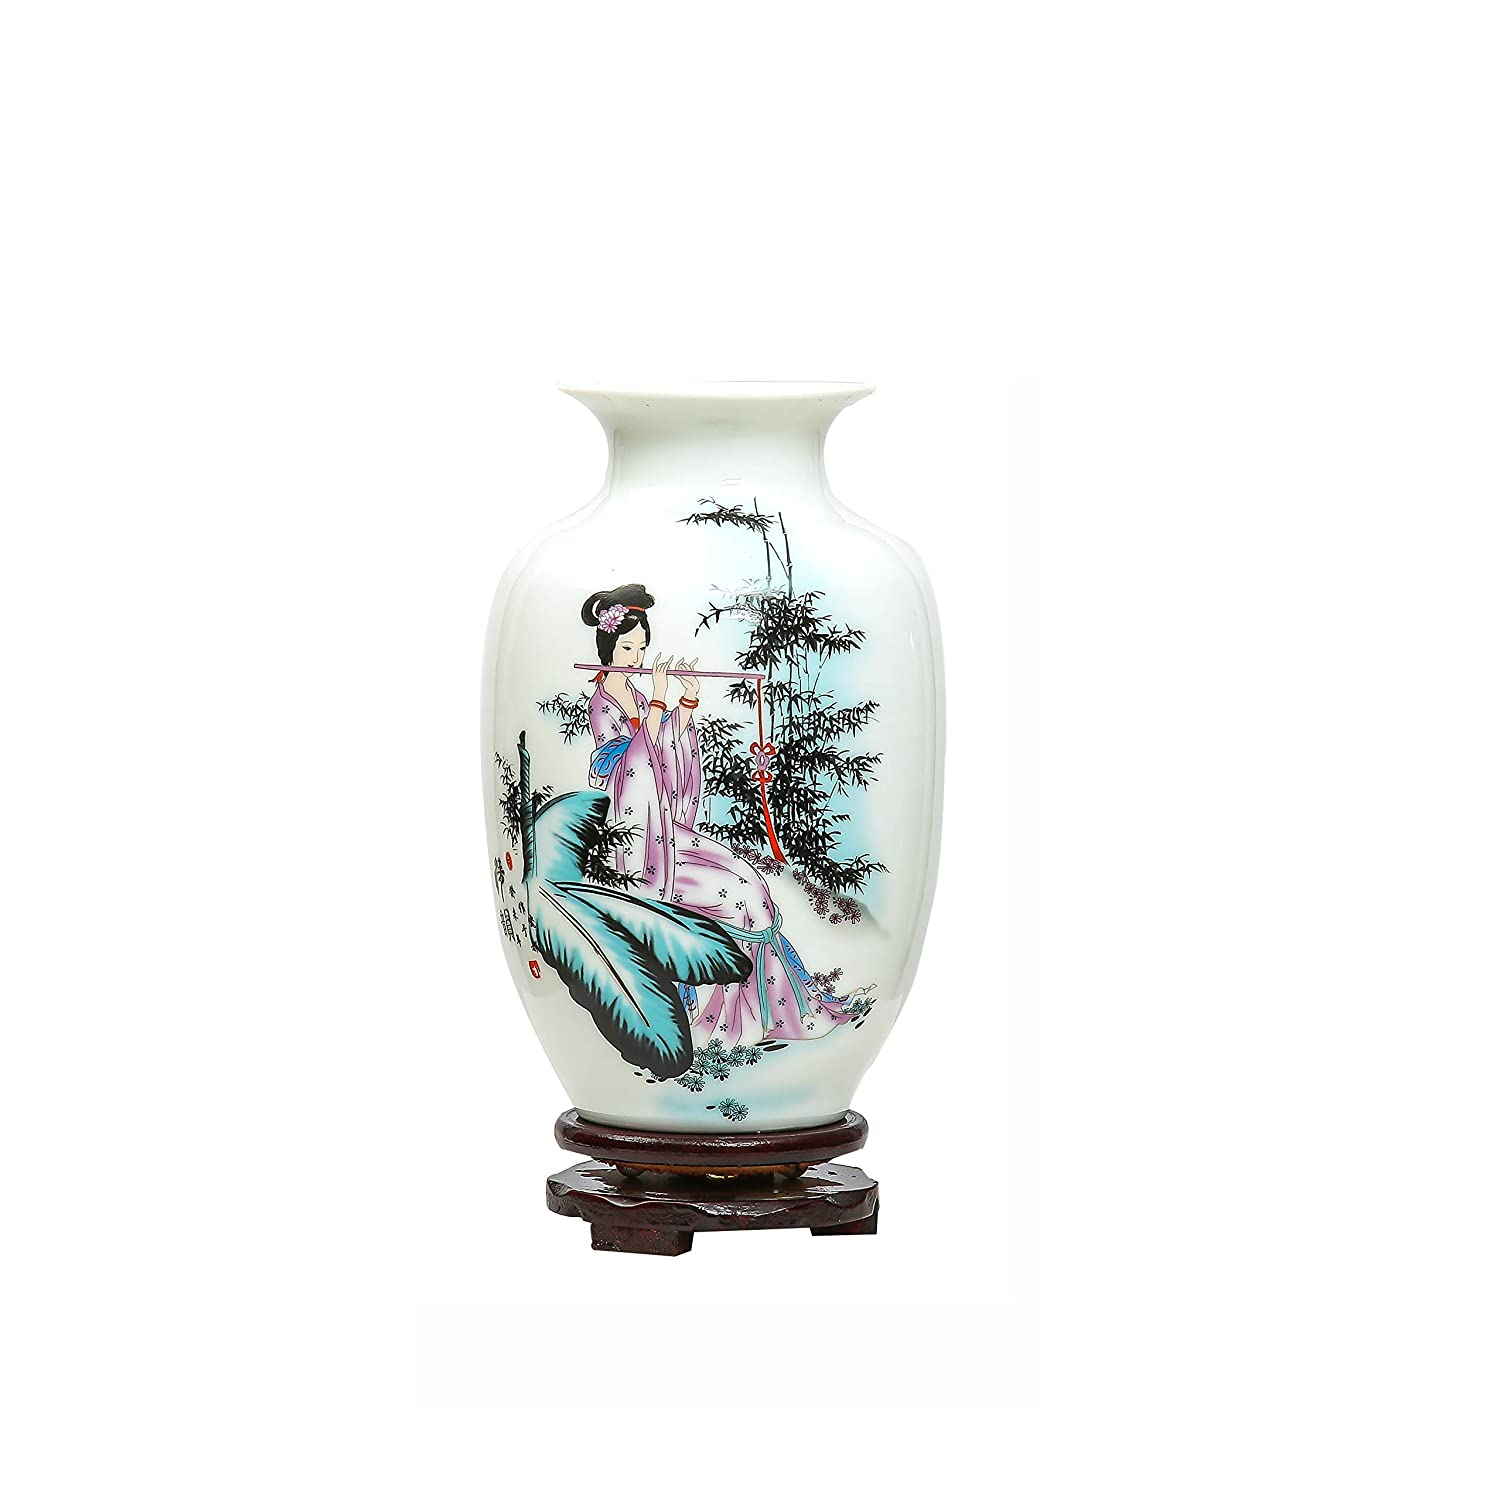 ufengke Chinese Retro White Porcelain Ceramic Vase With Base, Beauty Painting, Art Home Decoration, Type A